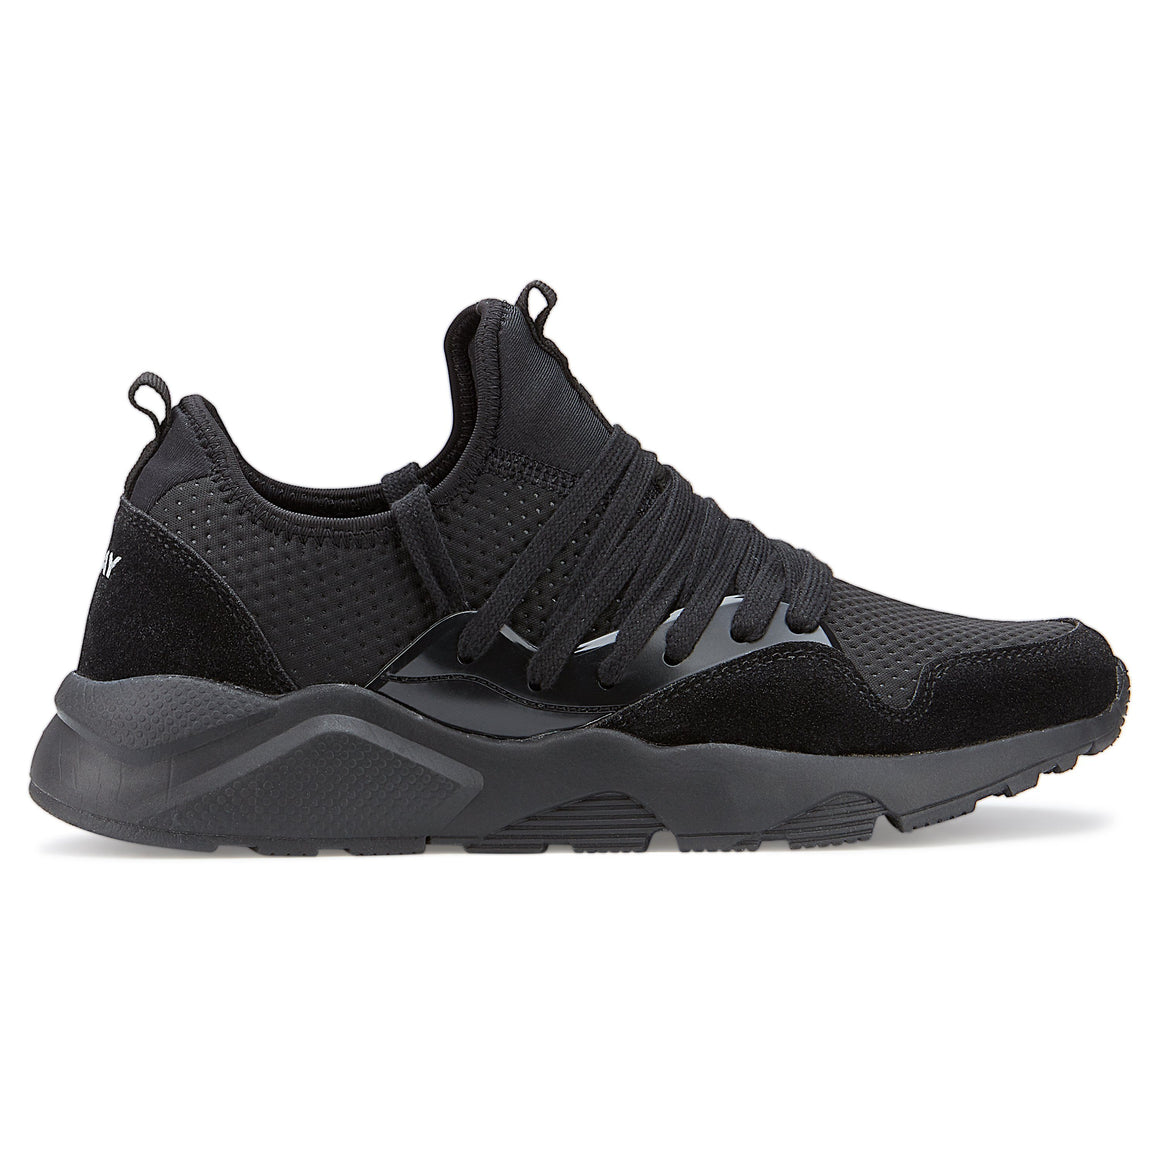 Xray Men's The Kamet Athletic Lowtop Sneakers BLACK